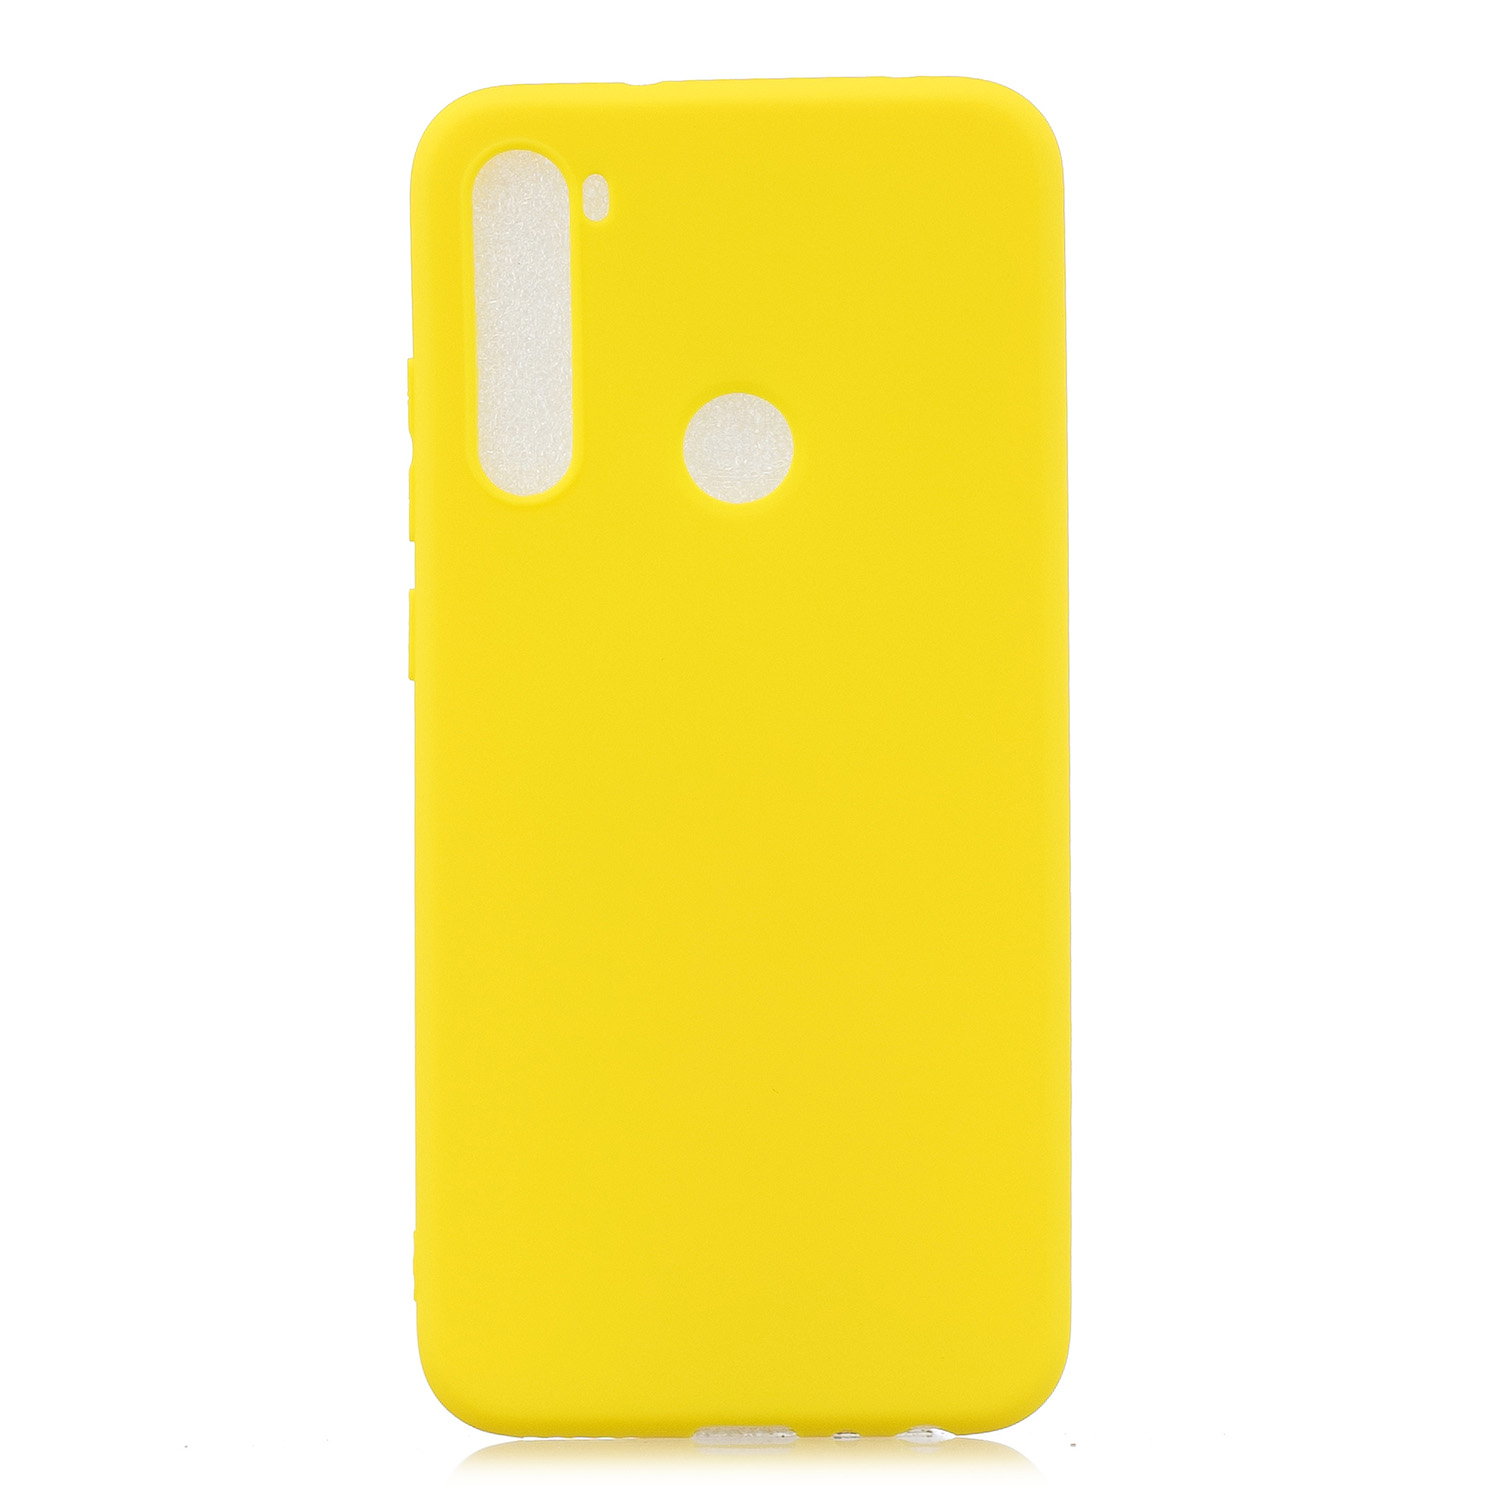 For Redmi 8 8A note 8T TPU Back Cover Soft Candy Color Frosted Surface Shockproof TPU Mobile Phone Protective Case 3